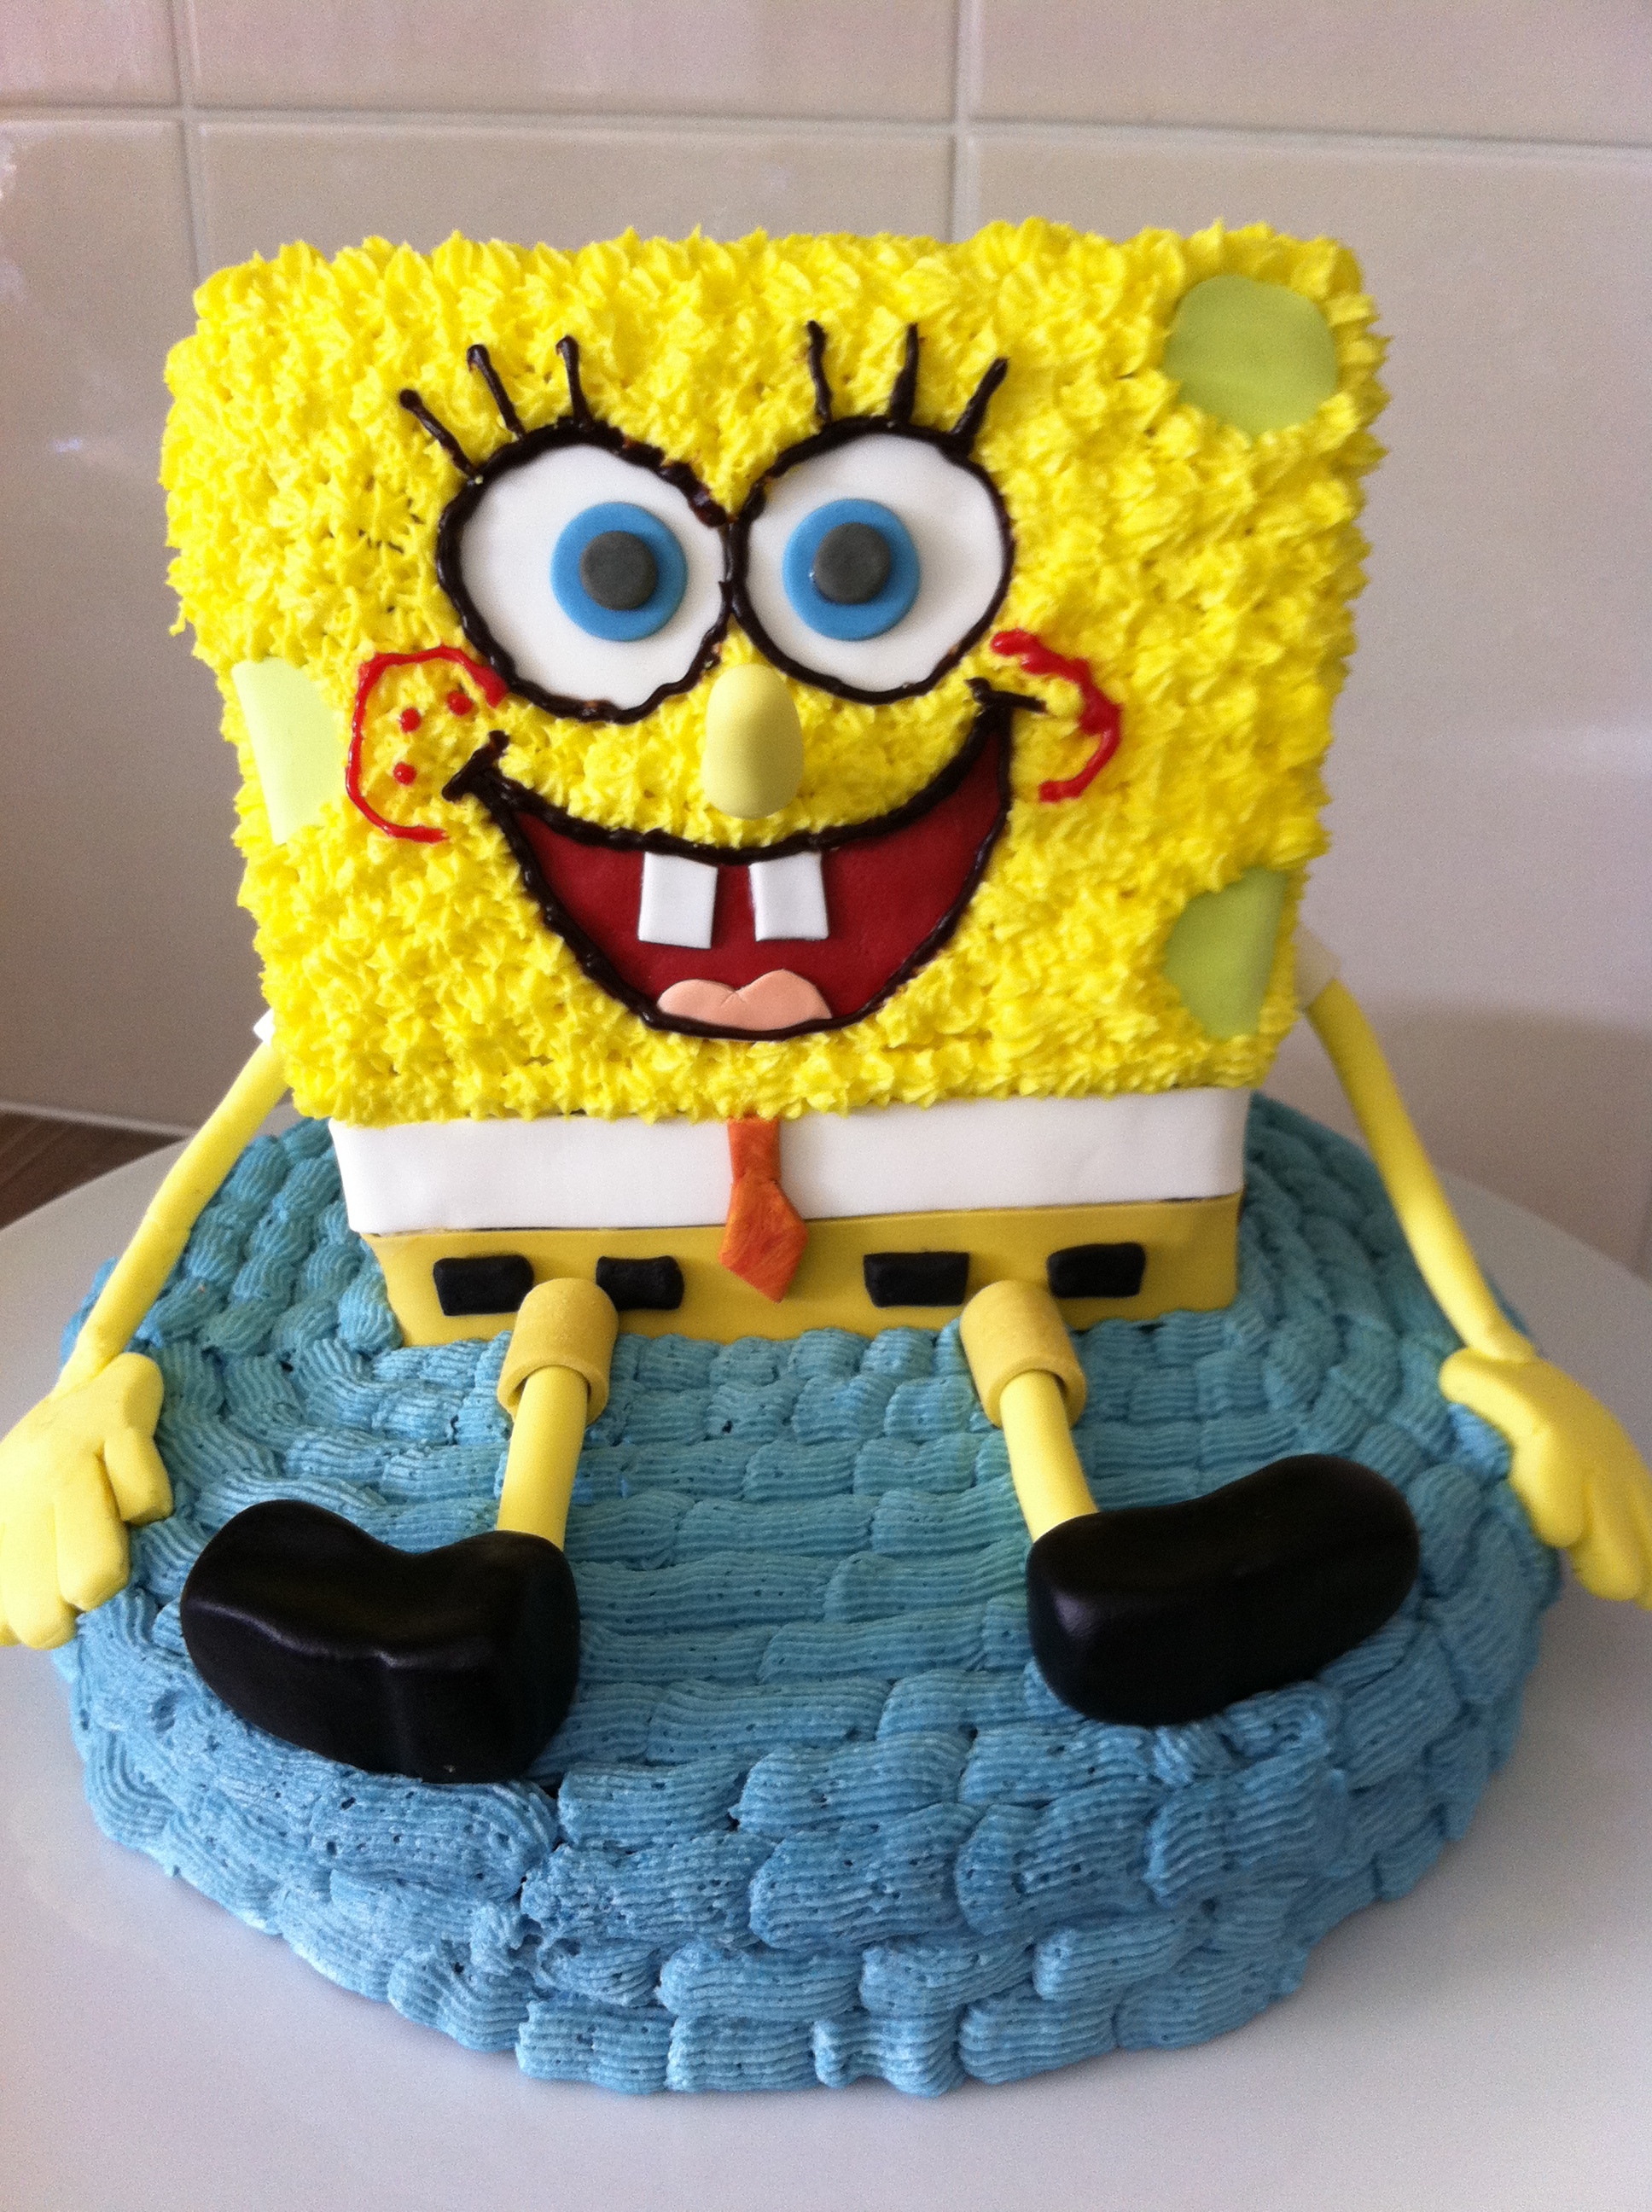 Stupendous Spongebob Cakes Decoration Ideas Little Birthday Cakes Personalised Birthday Cards Bromeletsinfo